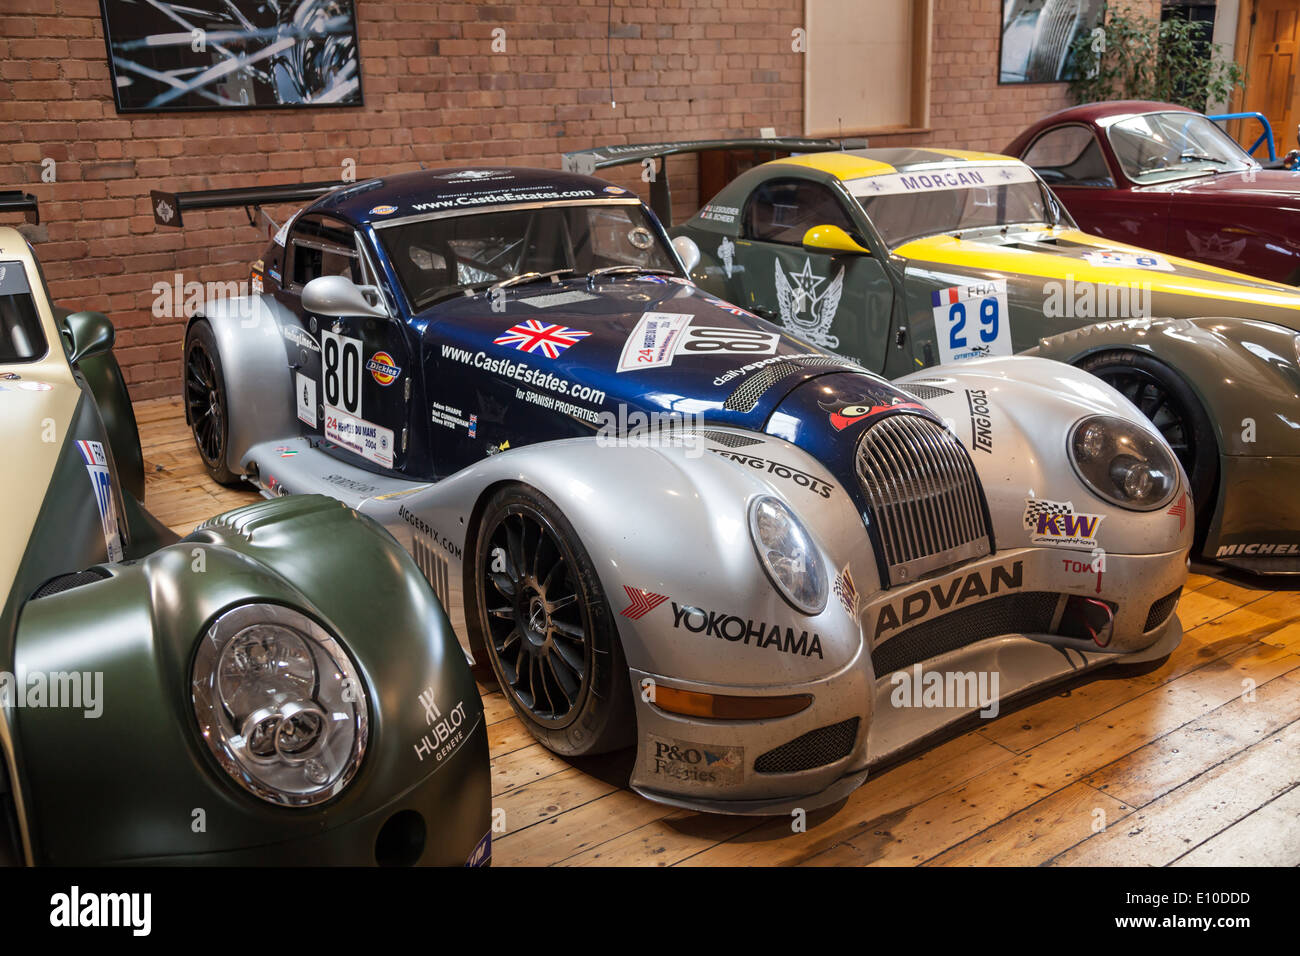 Morgan aero stock photos morgan aero stock images alamy morgan aero supersport gt3s at the morgan motors car factory museum malvern worcestershire england uk vanachro Images